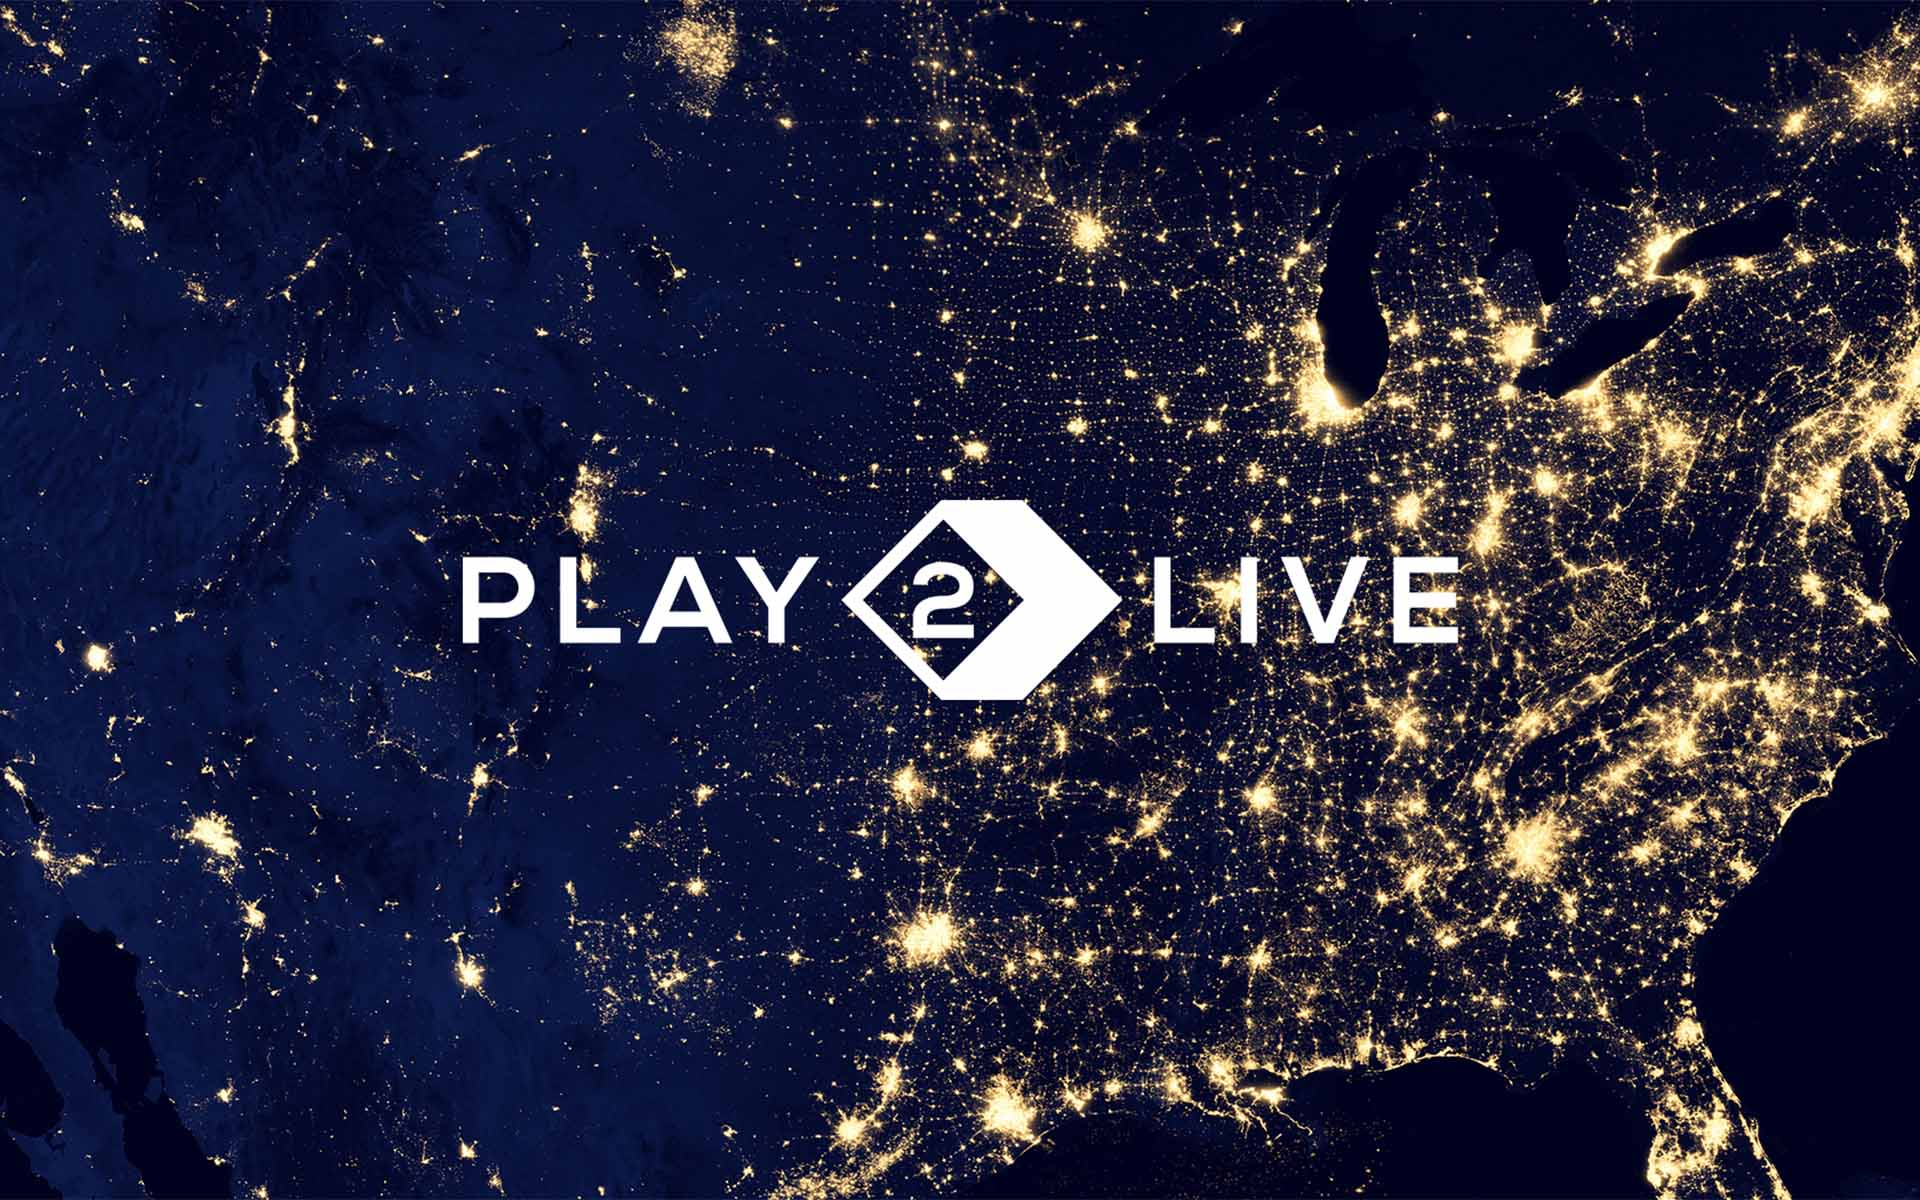 Play2Live Develops Its Own Blockchain Called Level Up Chain